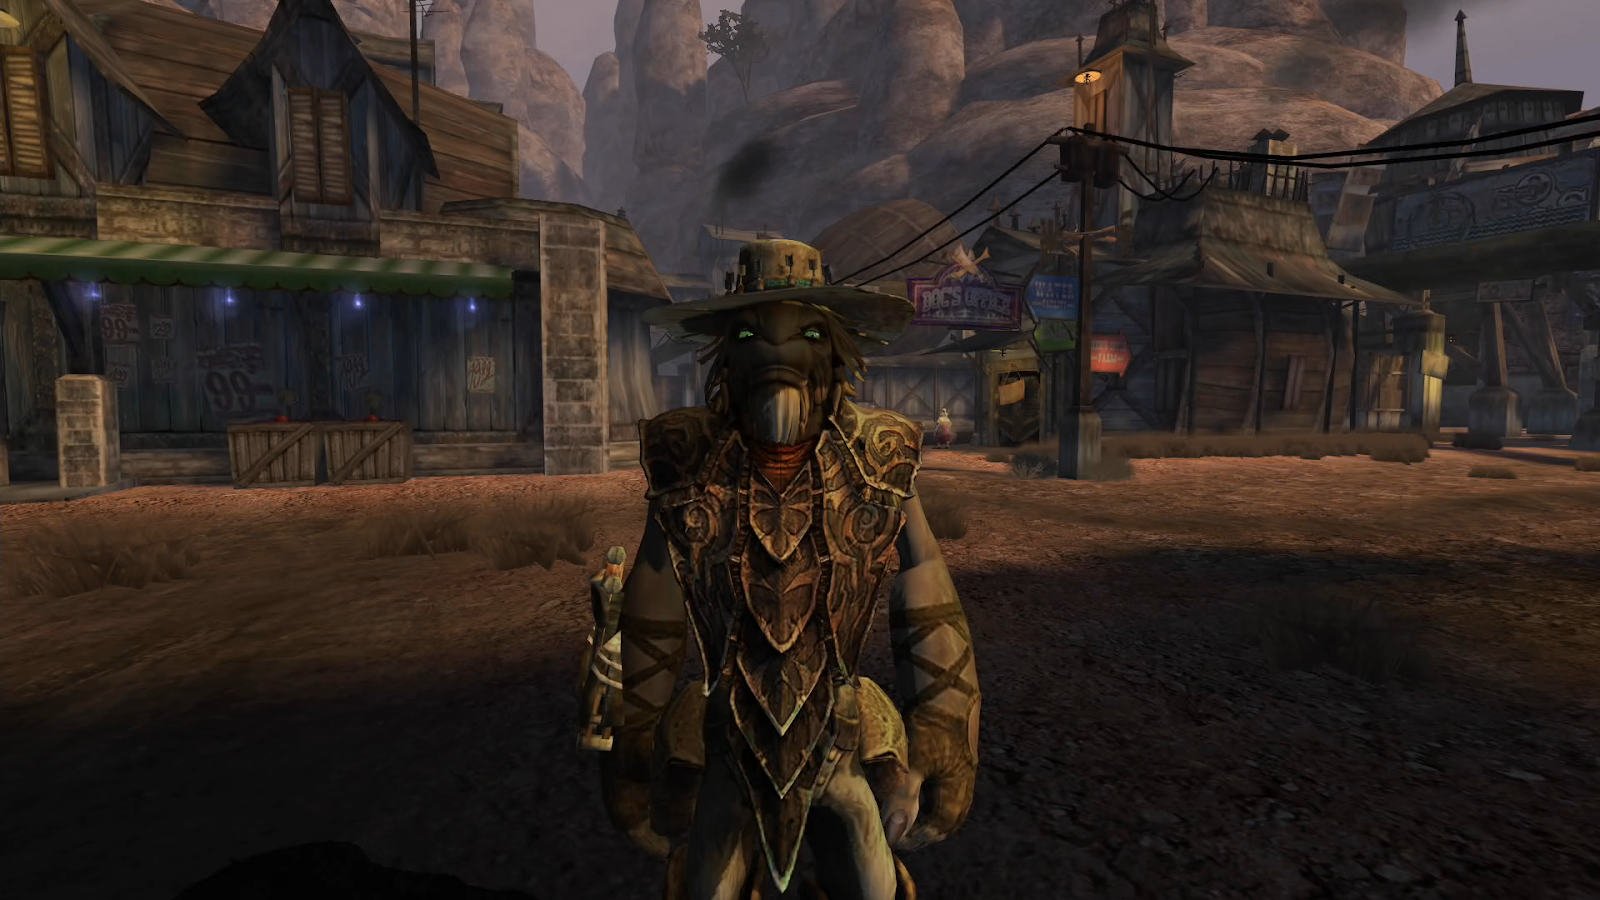 A Grizzled Cat Shoots Living Critters At Outlaws In Oddworld: Stranger's Wrath